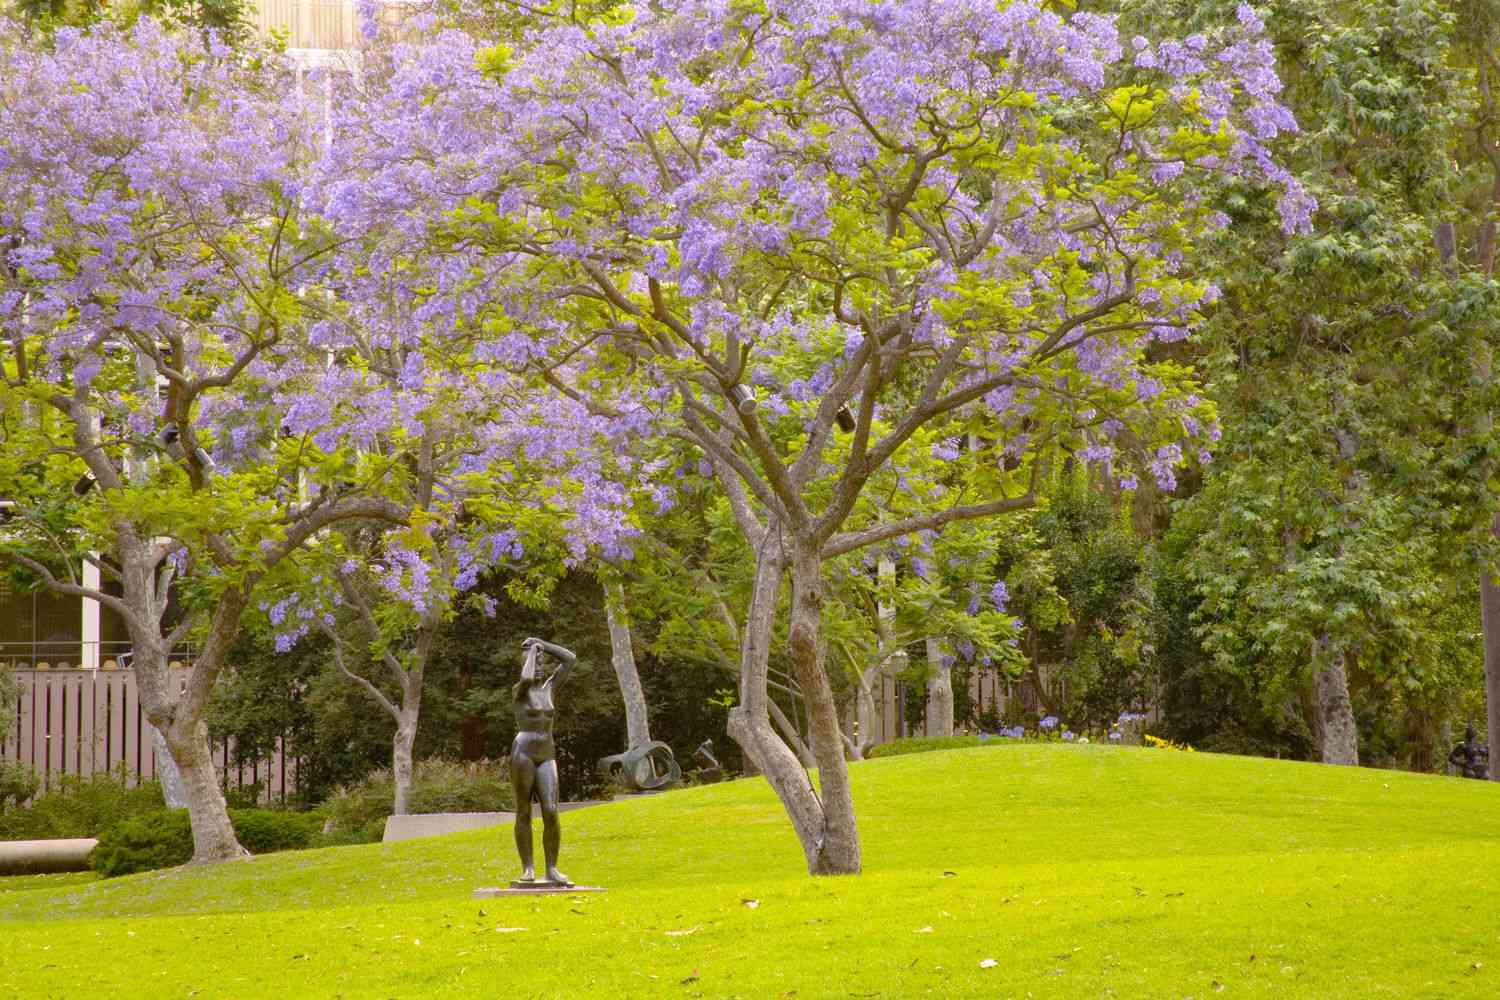 bronze statue of a woman in a green field under a purple blooming tree